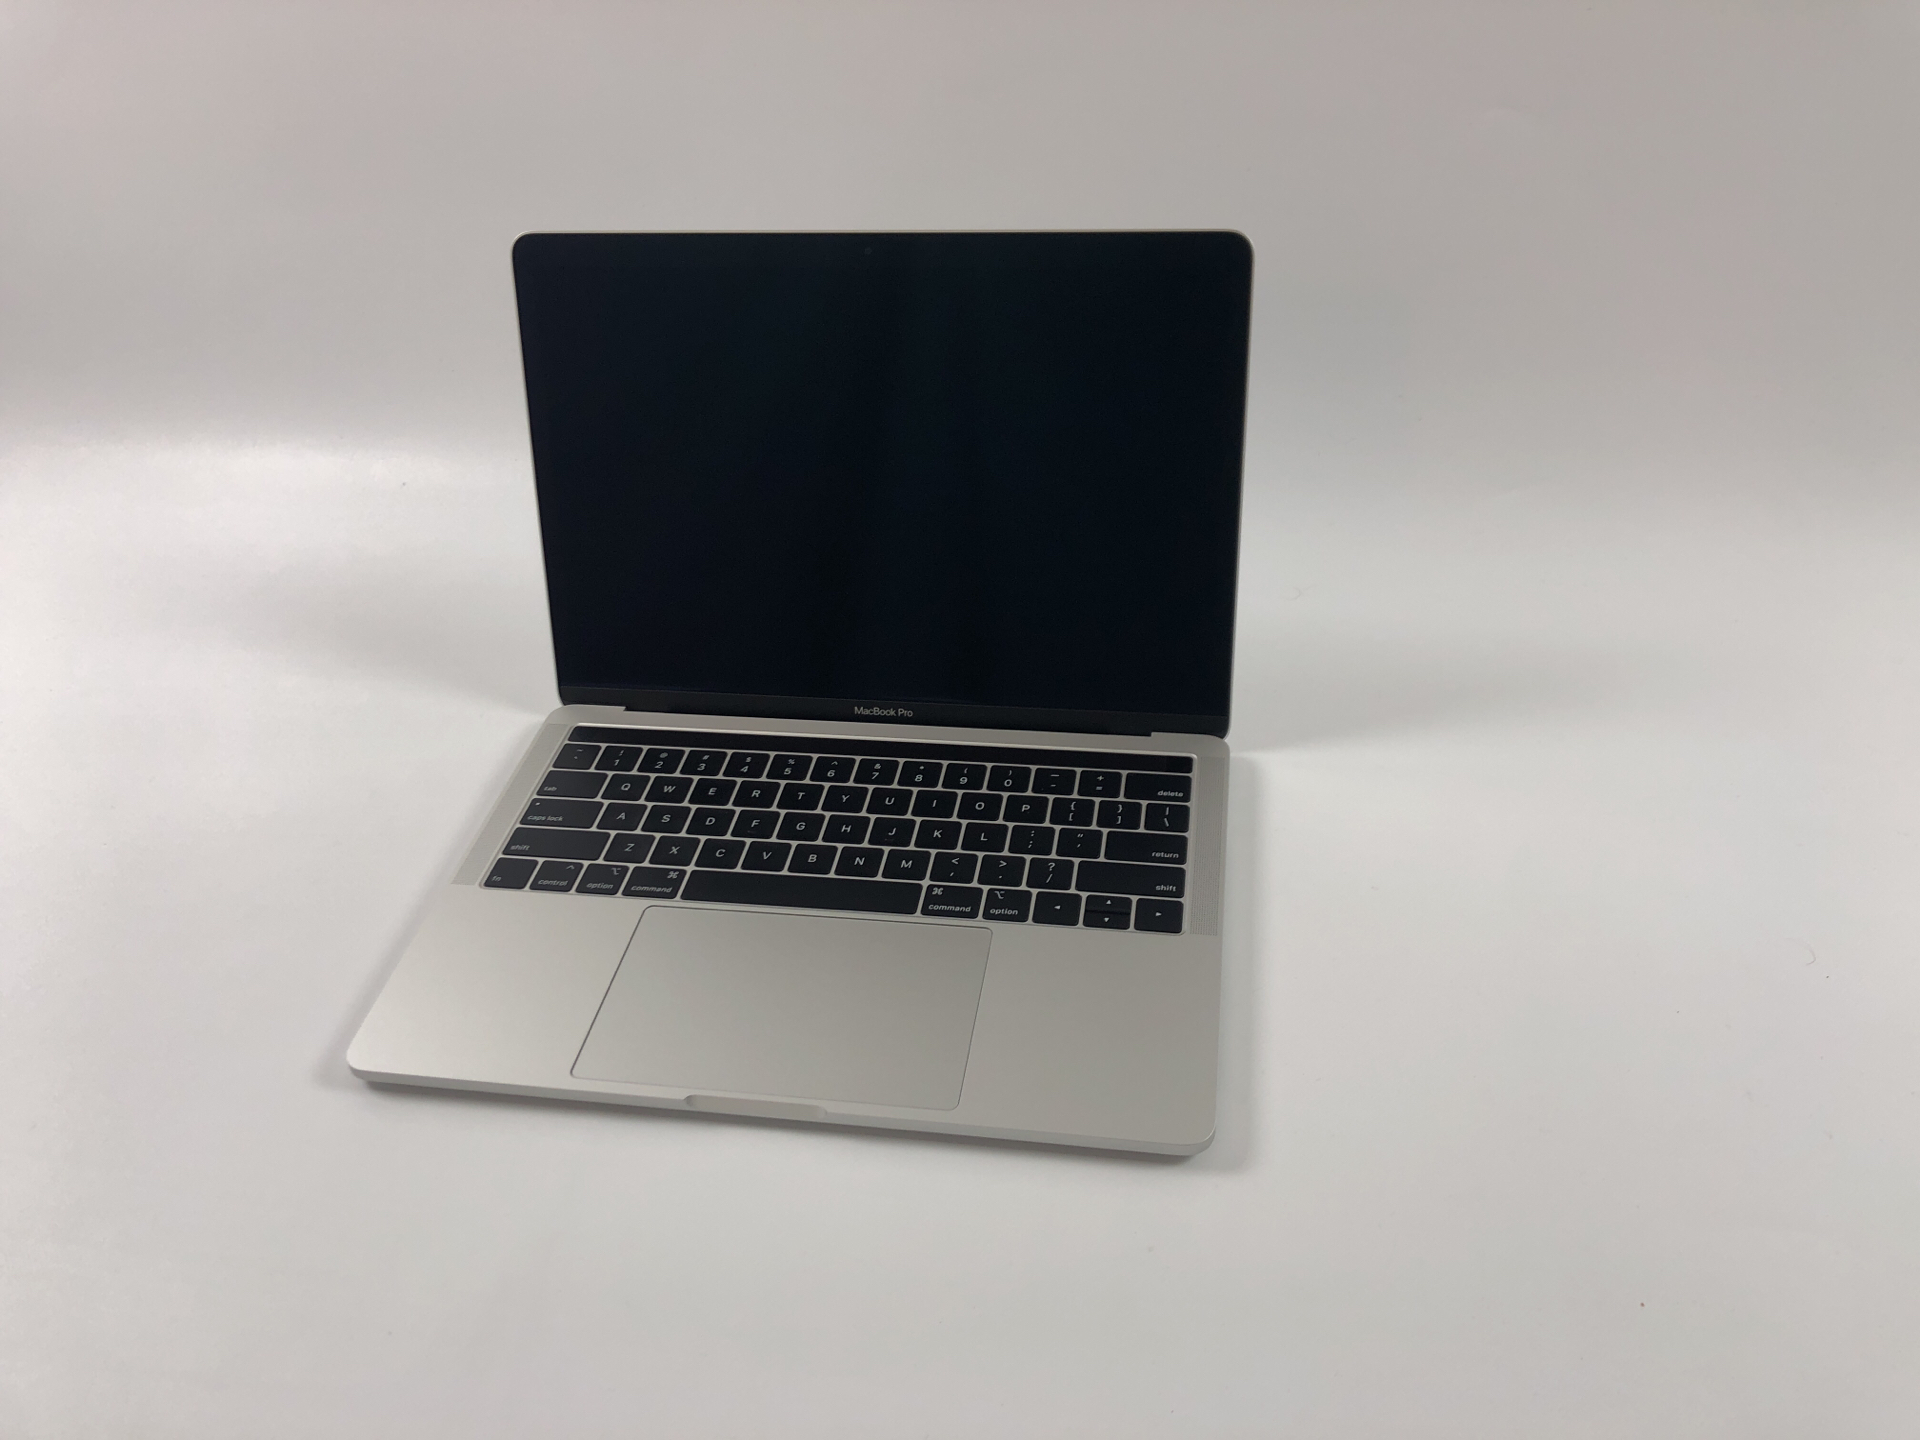 "MacBook Pro 13"" 4TBT Mid 2018 (Intel Quad-Core i5 2.3 GHz 8 GB RAM 512 GB SSD), Silver, Intel Quad-Core i5 2.3 GHz, 8 GB RAM, 512 GB SSD, Kuva 1"